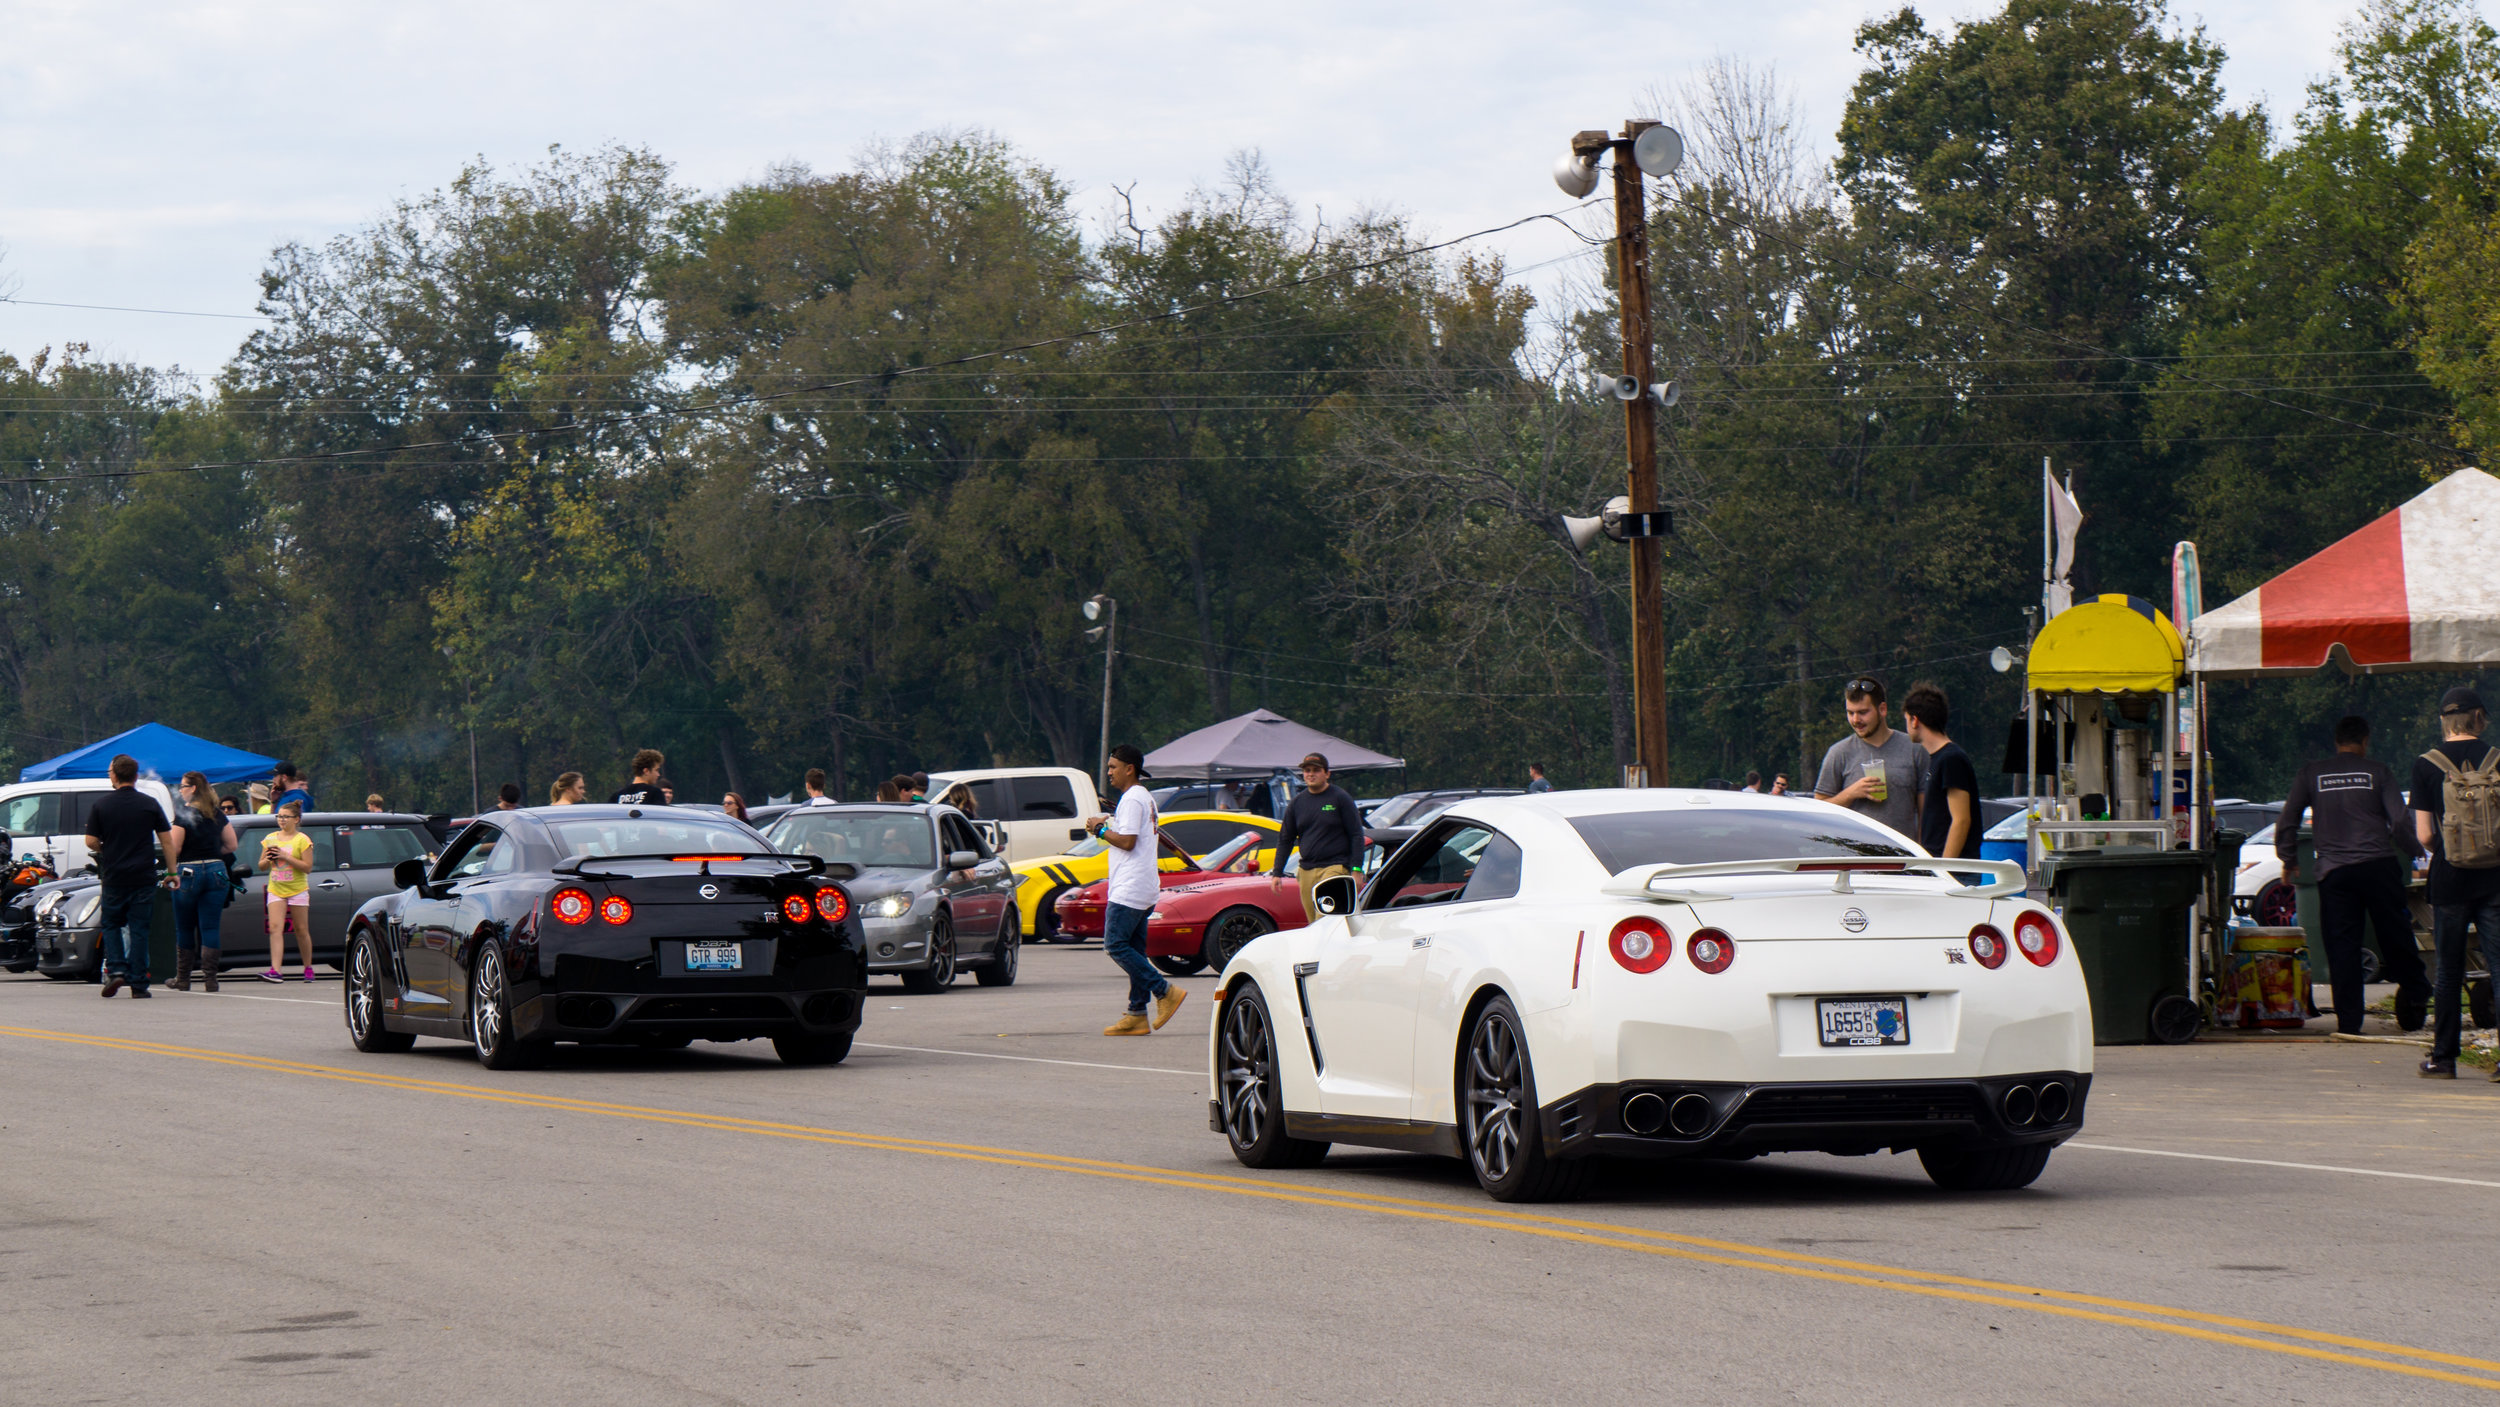 A few GTR getting ready to take a run at the drag strip.